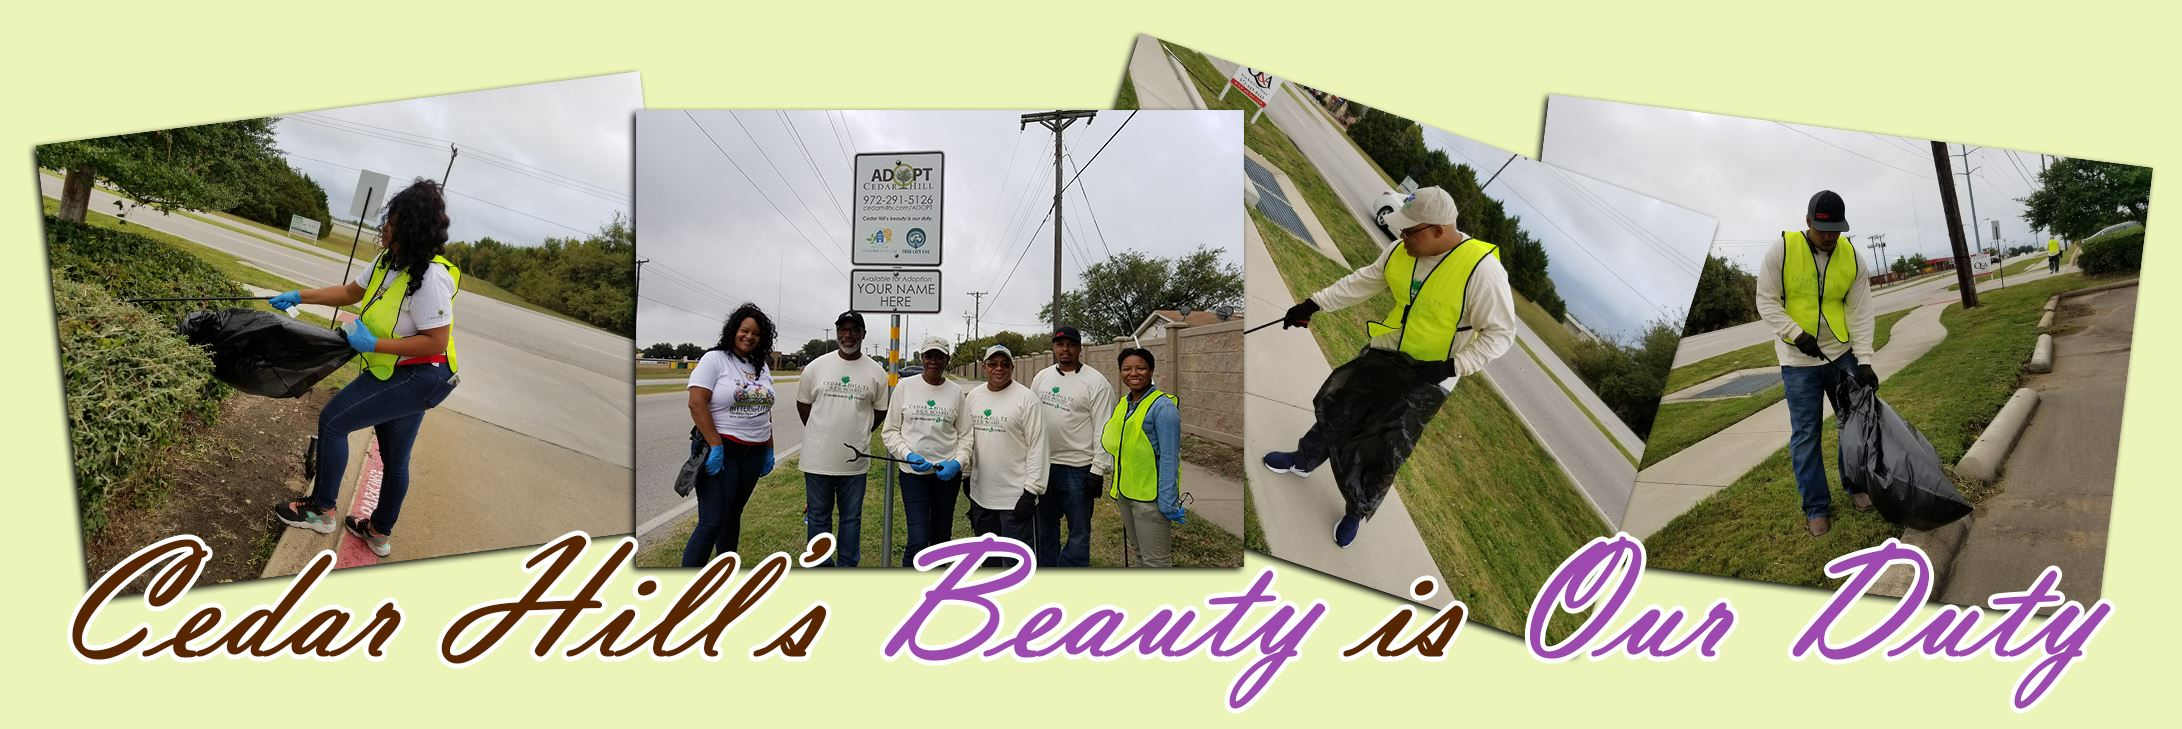 Citywide Cleanups Banner 2017 BES Winter